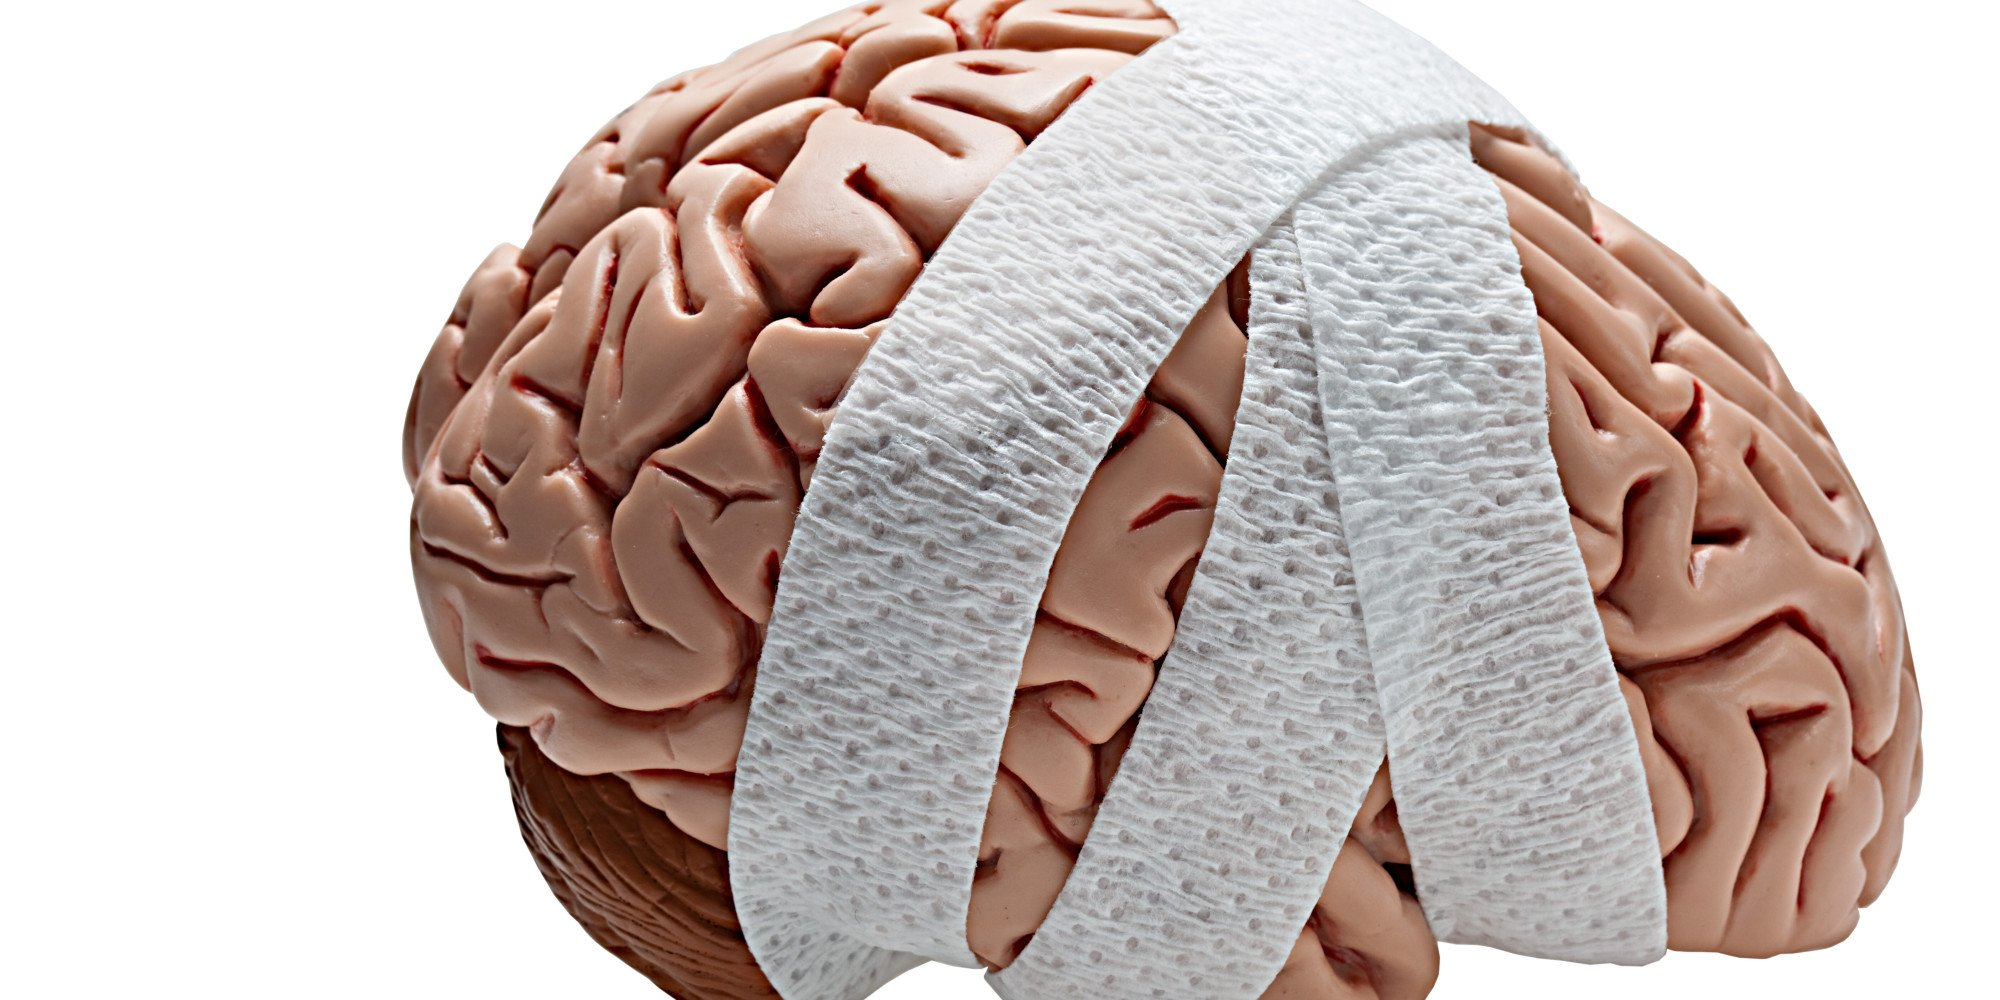 The human body can become damaged in a seemingly endless number of ways, but doctors have long known that brain trauma is particularly dire. It is not only devastating, but also hard to detect. Diagnosing an individual with a concussion is sometimes a shot in the dark even for trained medical professionals, as symptoms aren't …